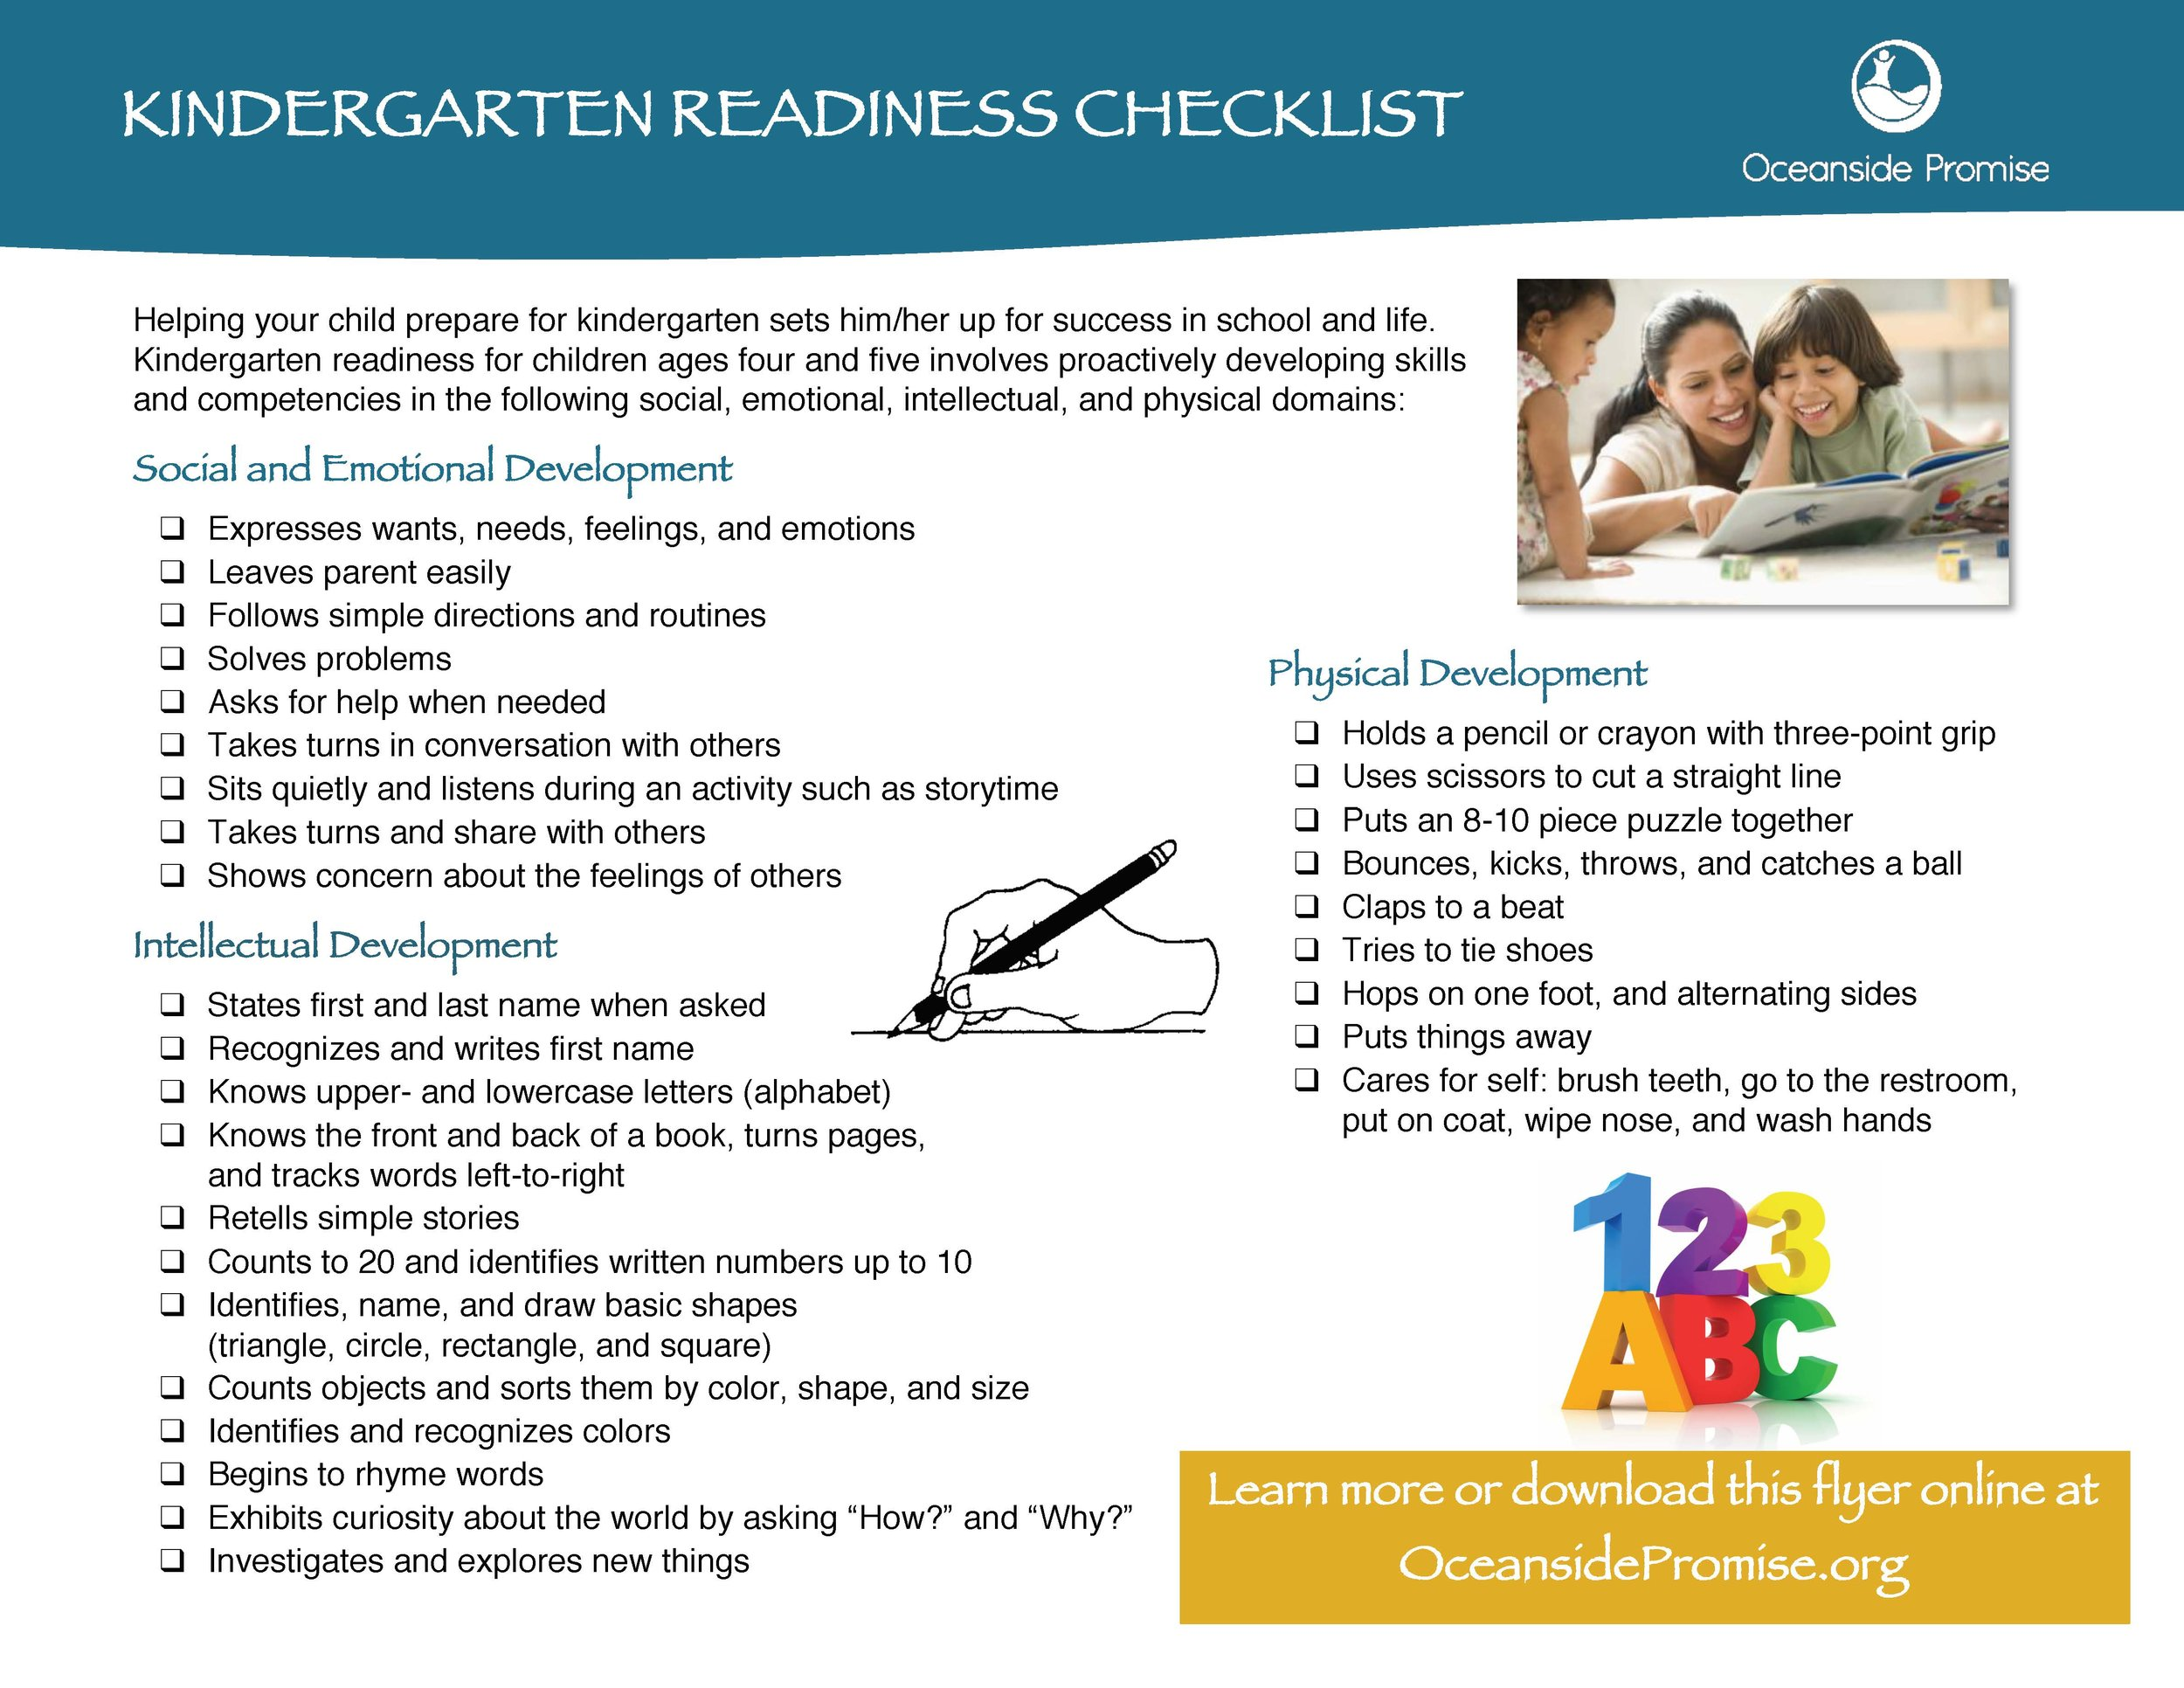 Promise_Kinder Readiness Checklist_2.25.19_Page_1.jpg